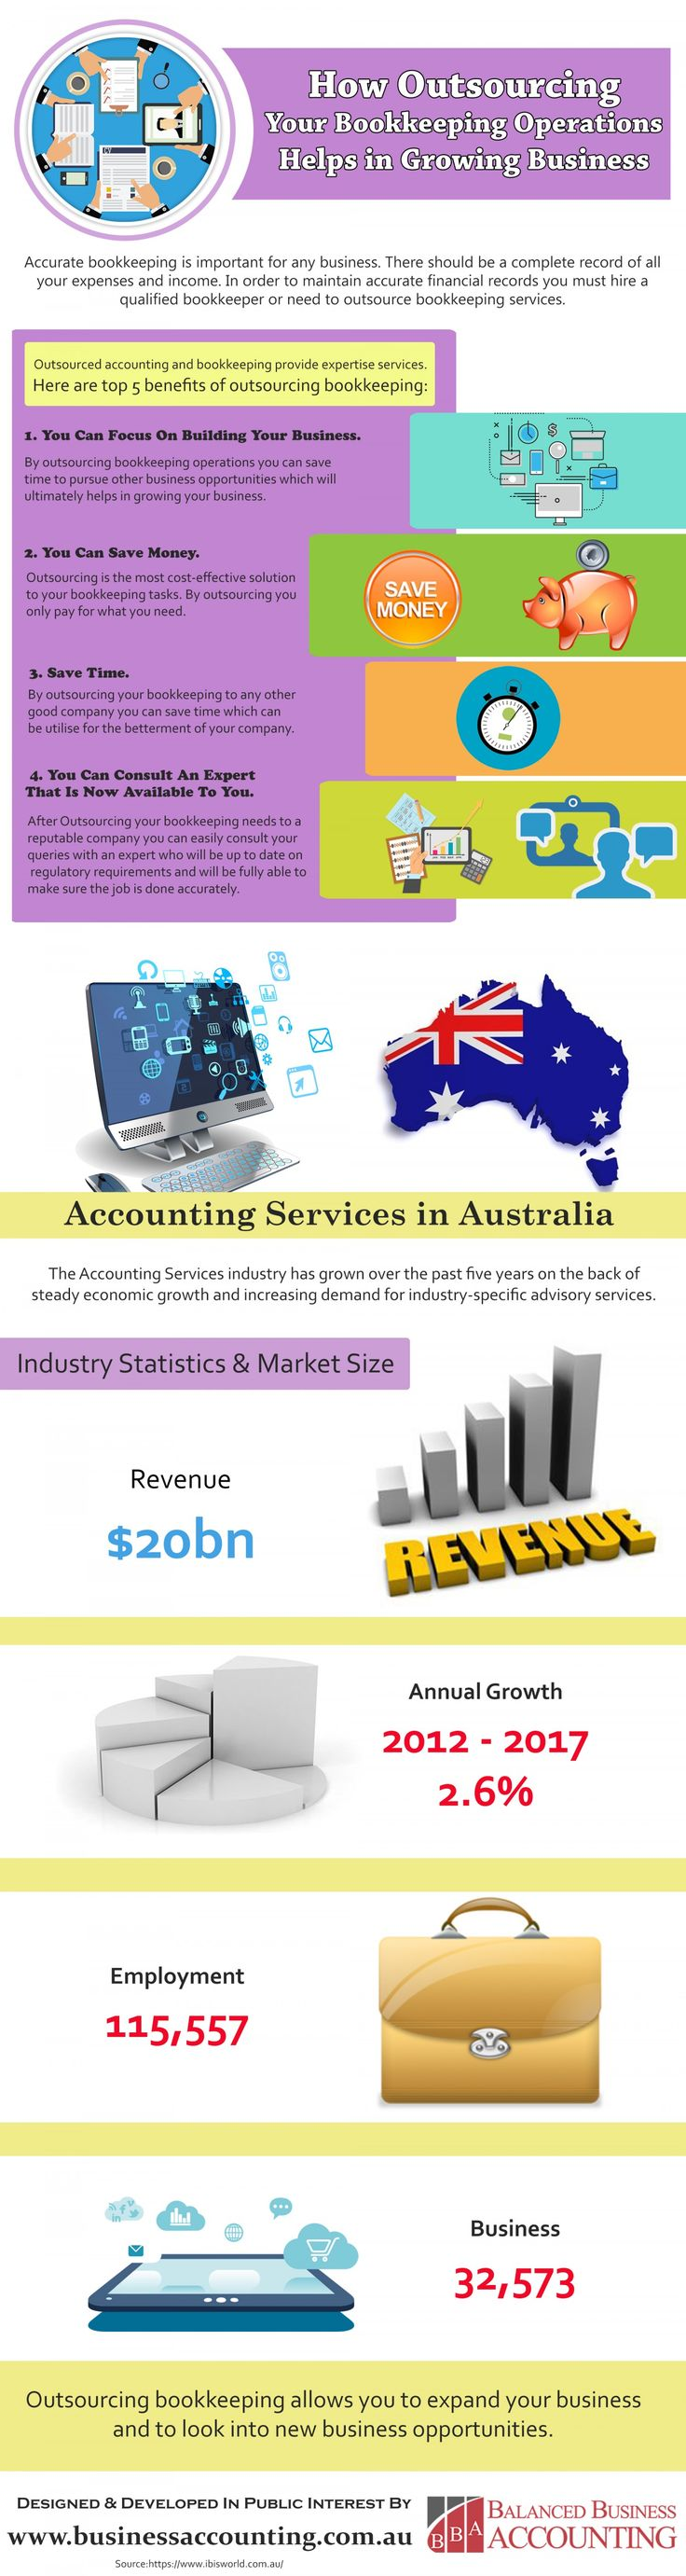 Balanced Business Accounting, Capalaba, is a team of accounting professionals dedicated to providing quality, professional accounting solutions to small and medium business throughout Brisbane and South East Queensland. Visit :- http://www.businessaccounting.com.au/